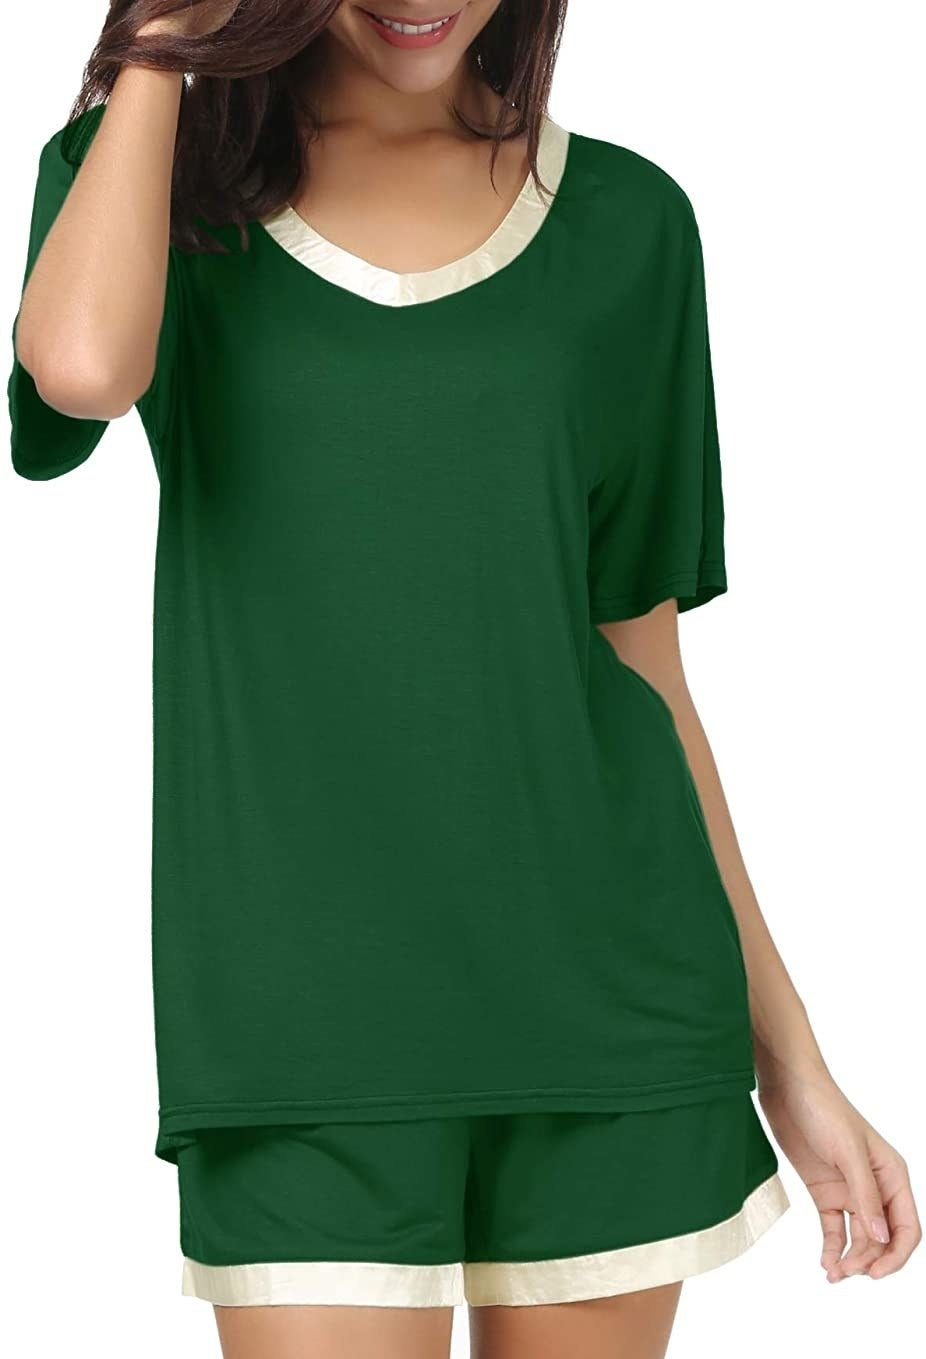 model in green scoop neck tee and shorts set with white satiny trim